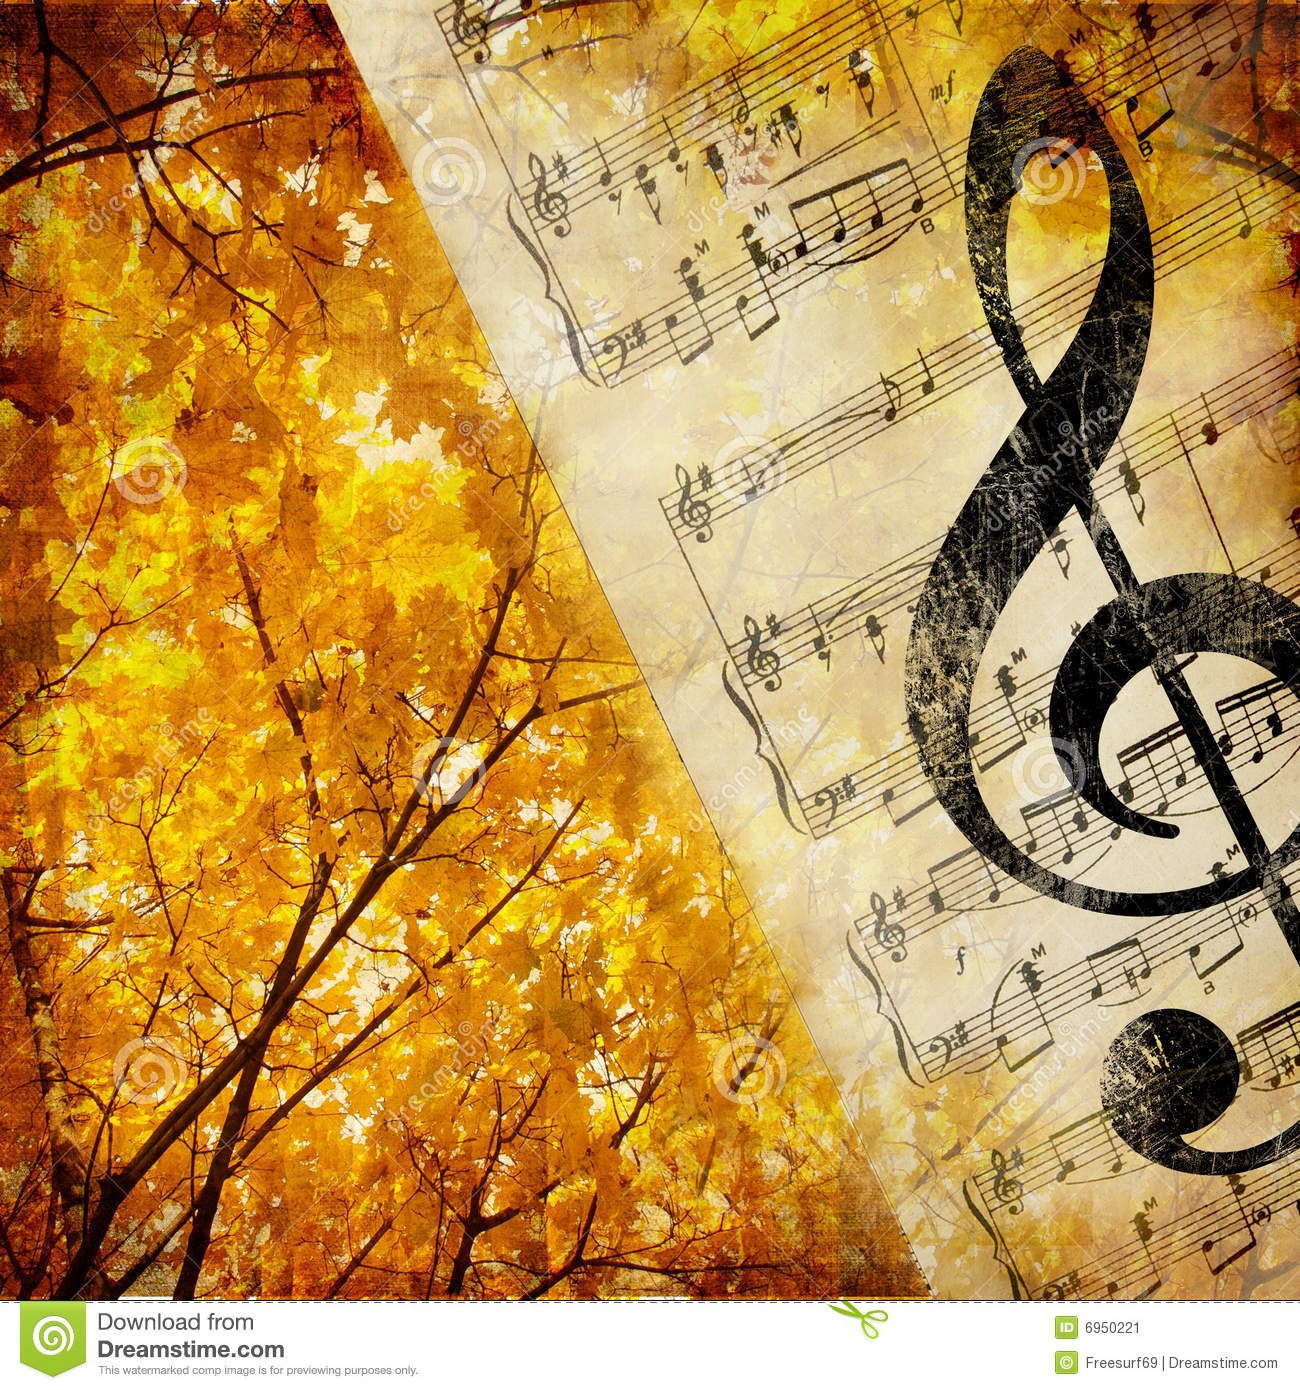 Autumn Music Stock Image - Image: 6950221